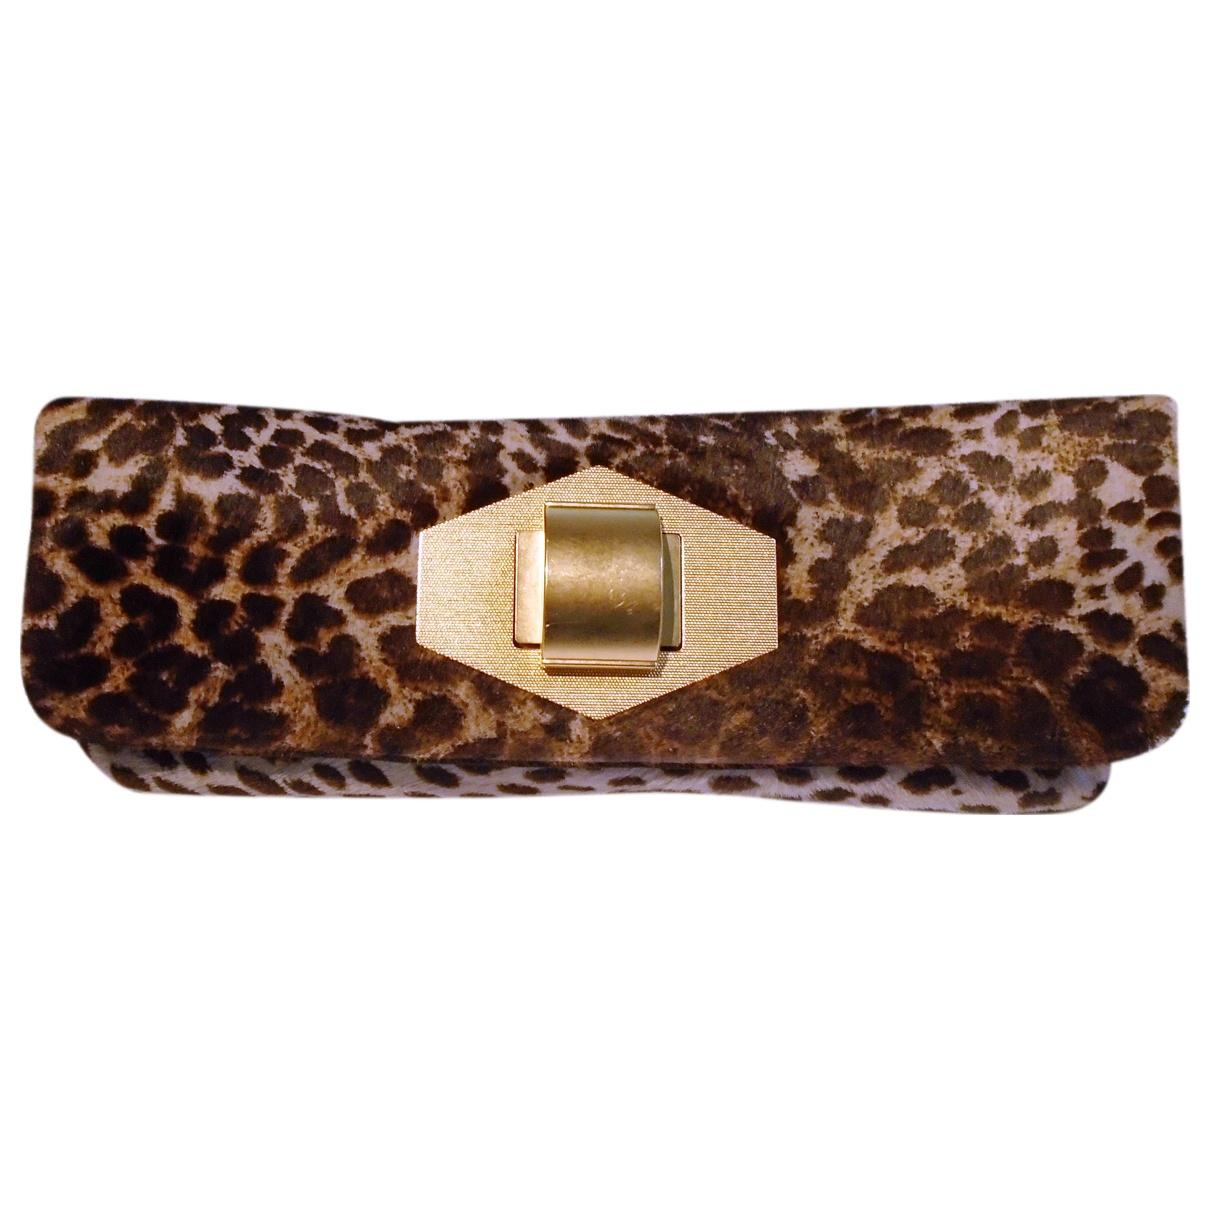 5a5421aa377d Lyst - Lanvin Pre-owned Pony-style Calfskin Clutch Bag in Brown